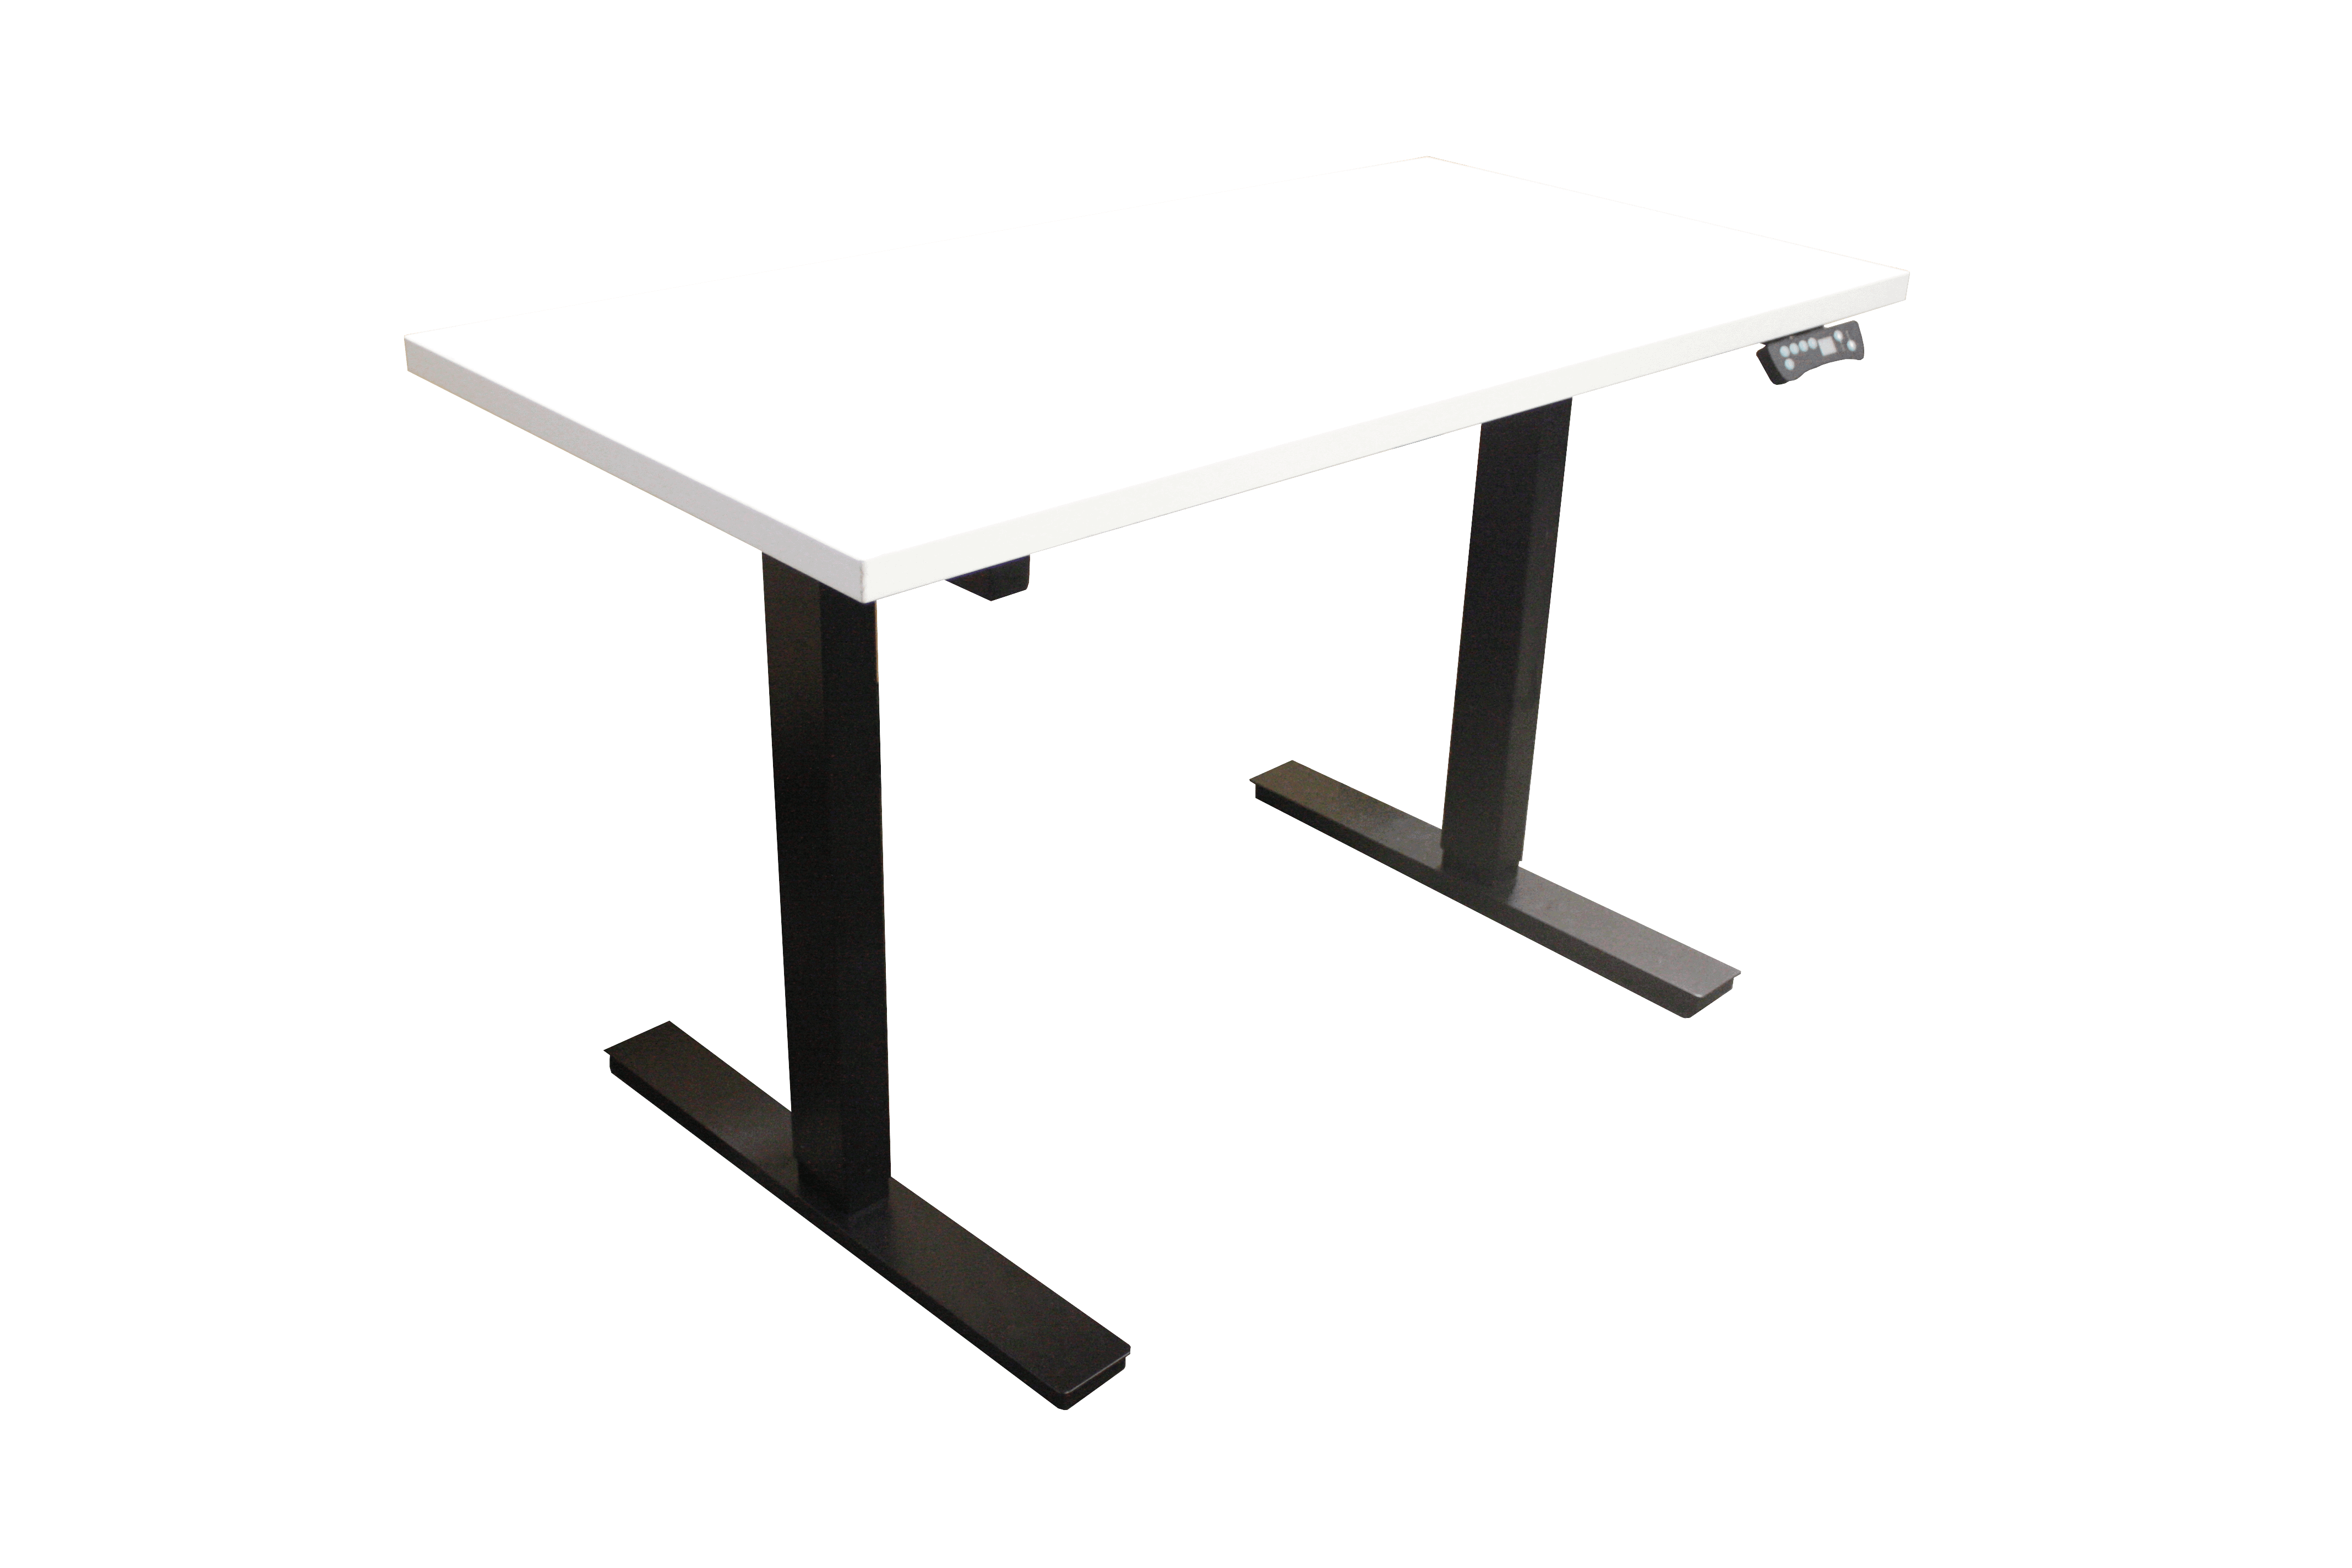 Generation 2 Height Adjustable Table